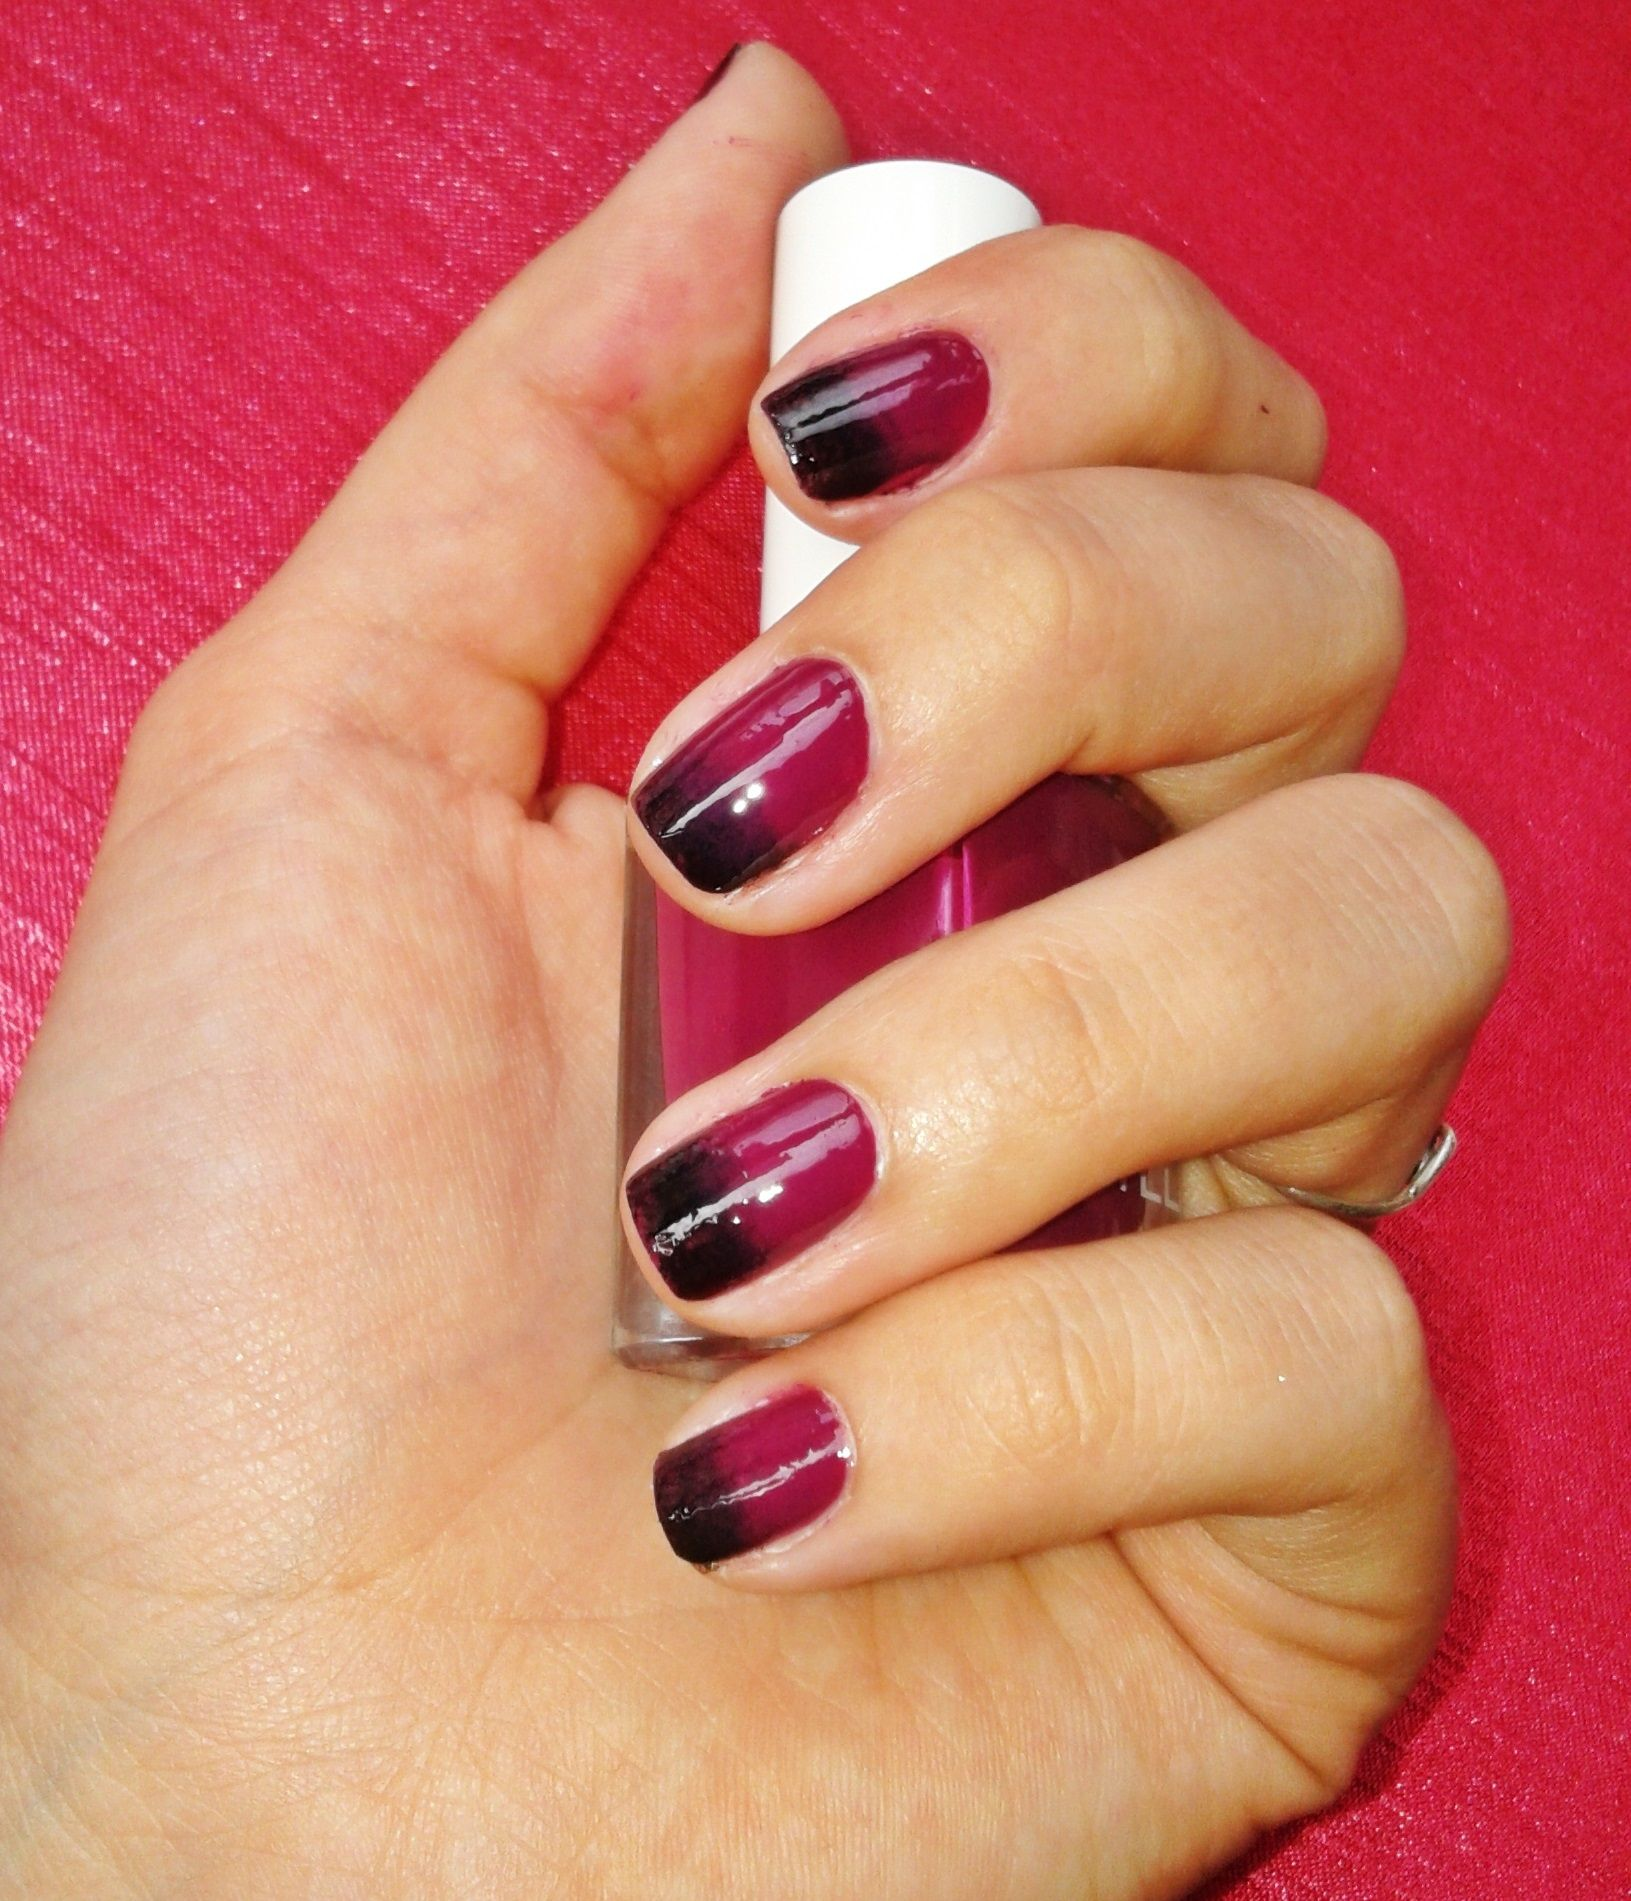 Ombre Nail Art: Black And Burgundy Ombre Nails #ombrenail #nailart